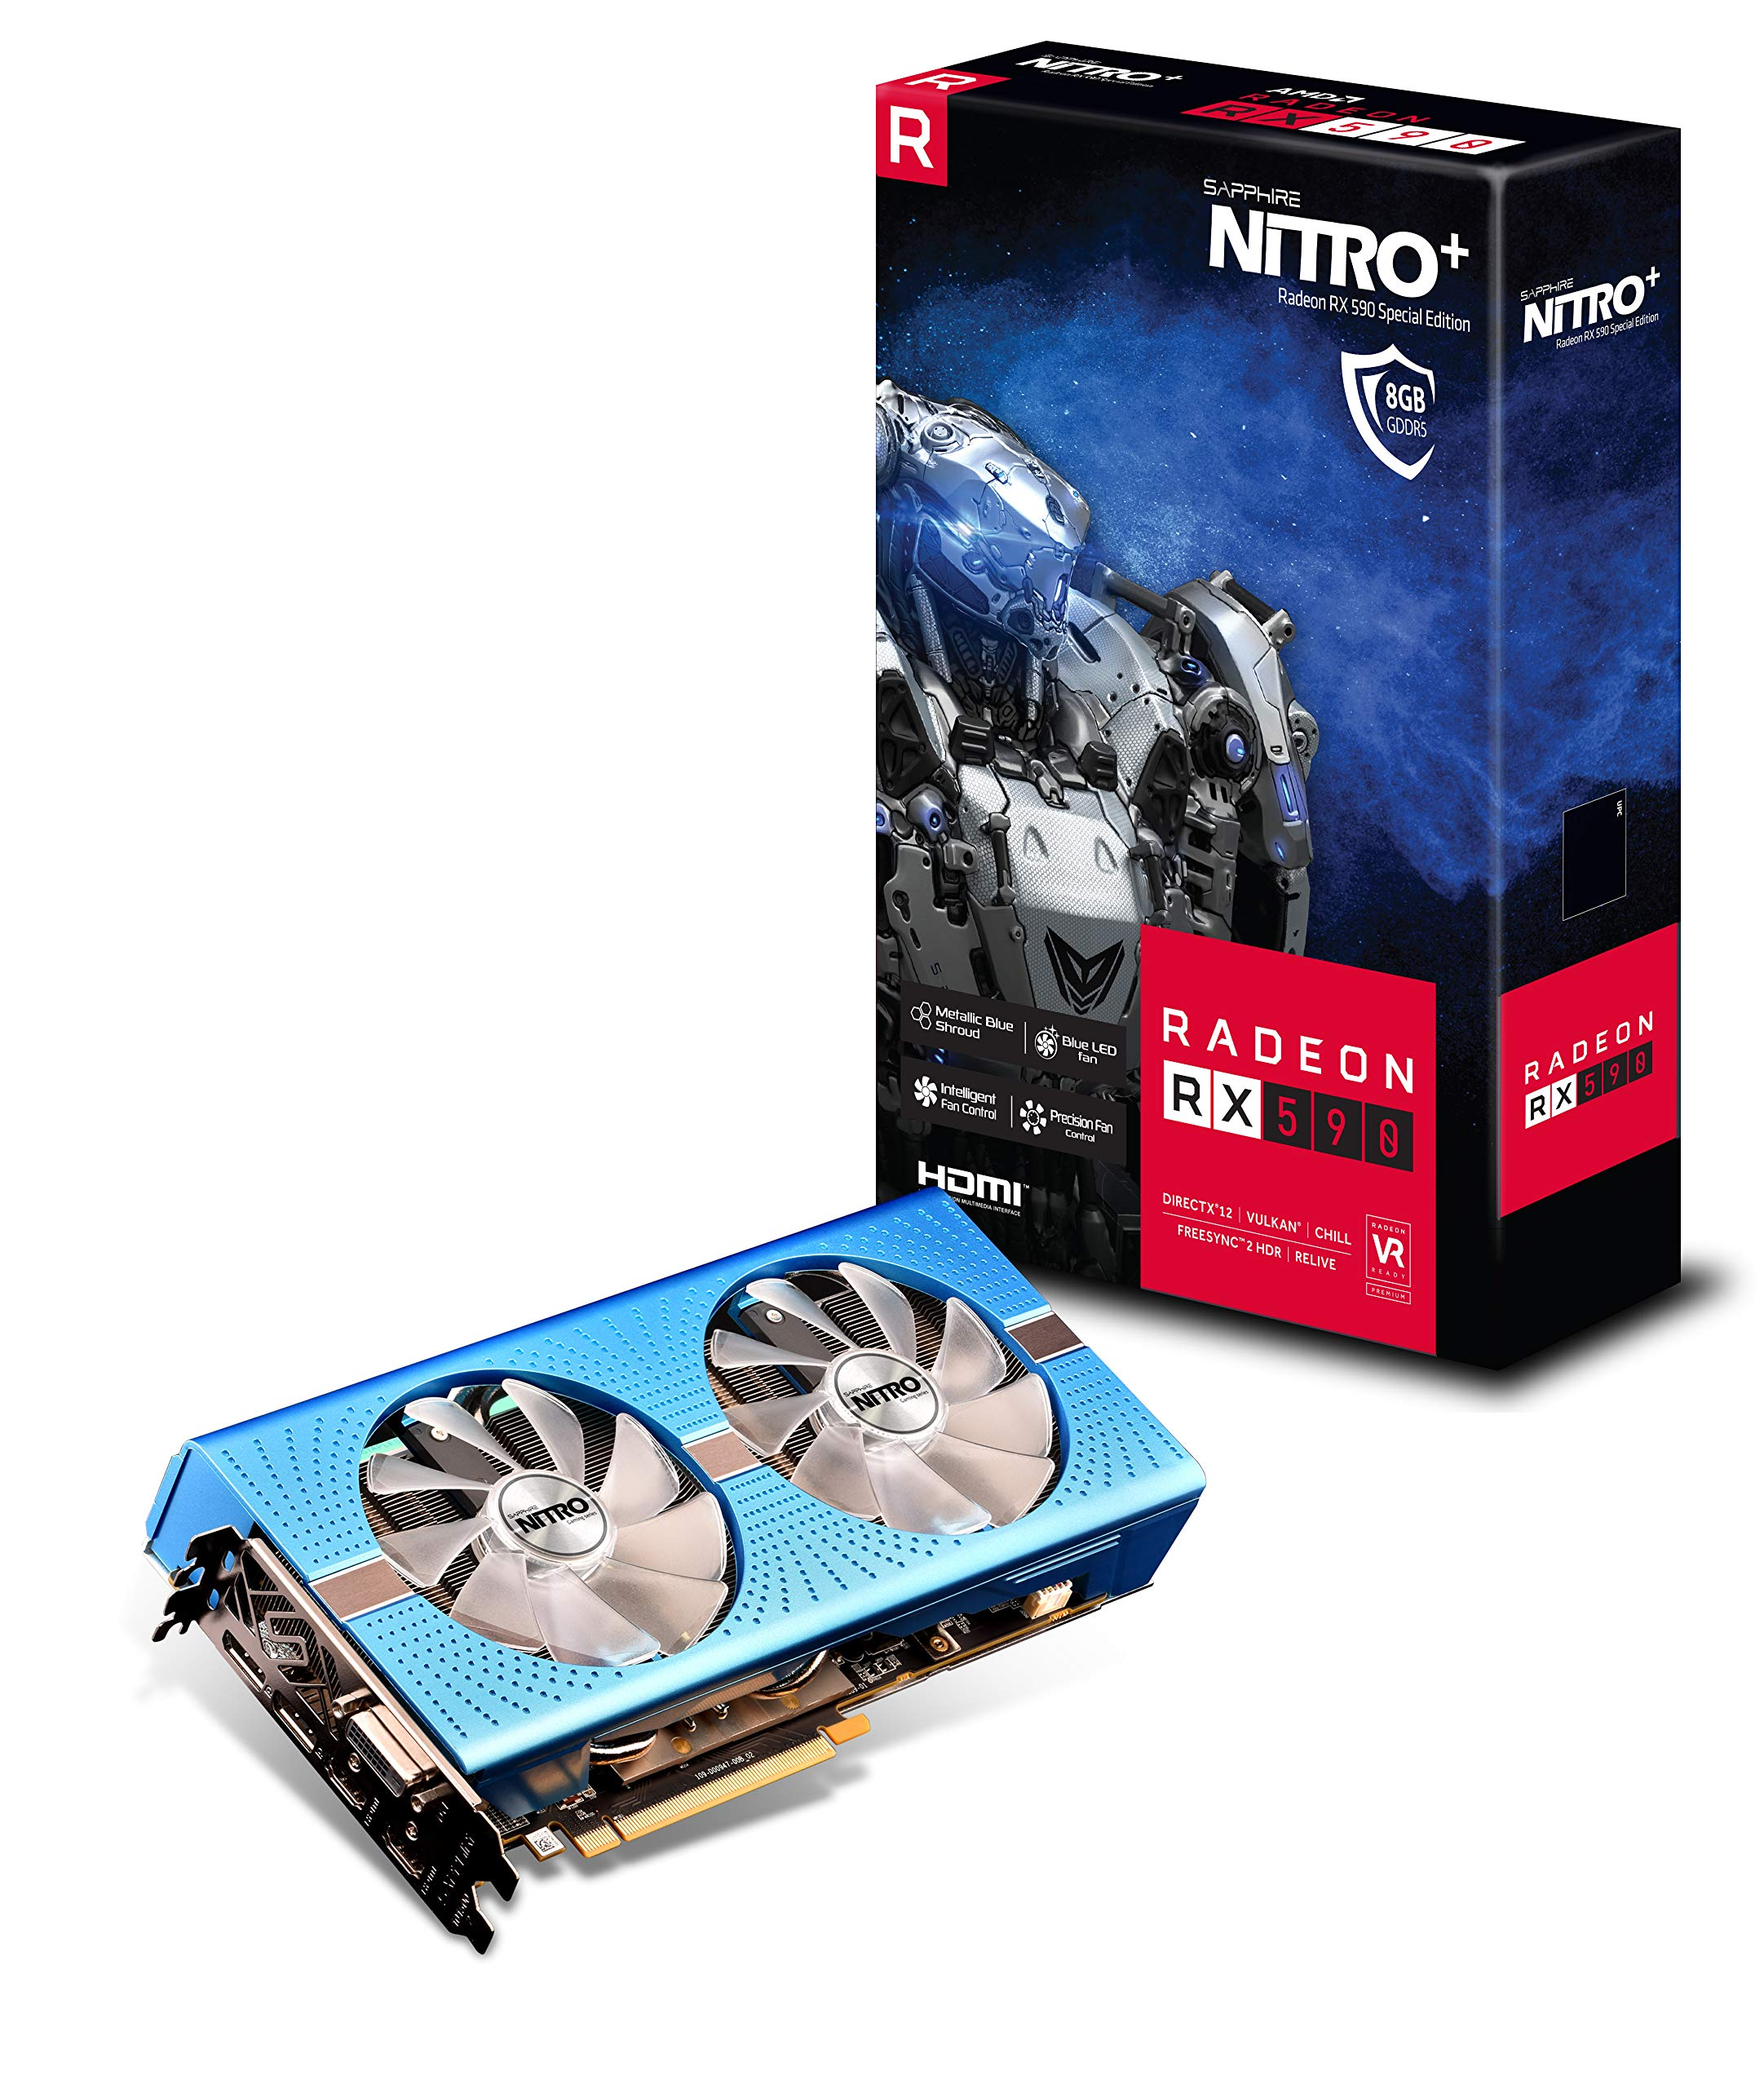 Sapphire Radeon Nitro+ RX 590 8GB GDDR5 Dual HDMI/ DVI-D/ Dual DP OC w/ Backplate Special Edition (UEFI) PCI-E Graphic Cards 11289-01-20G by Sapphire Technology